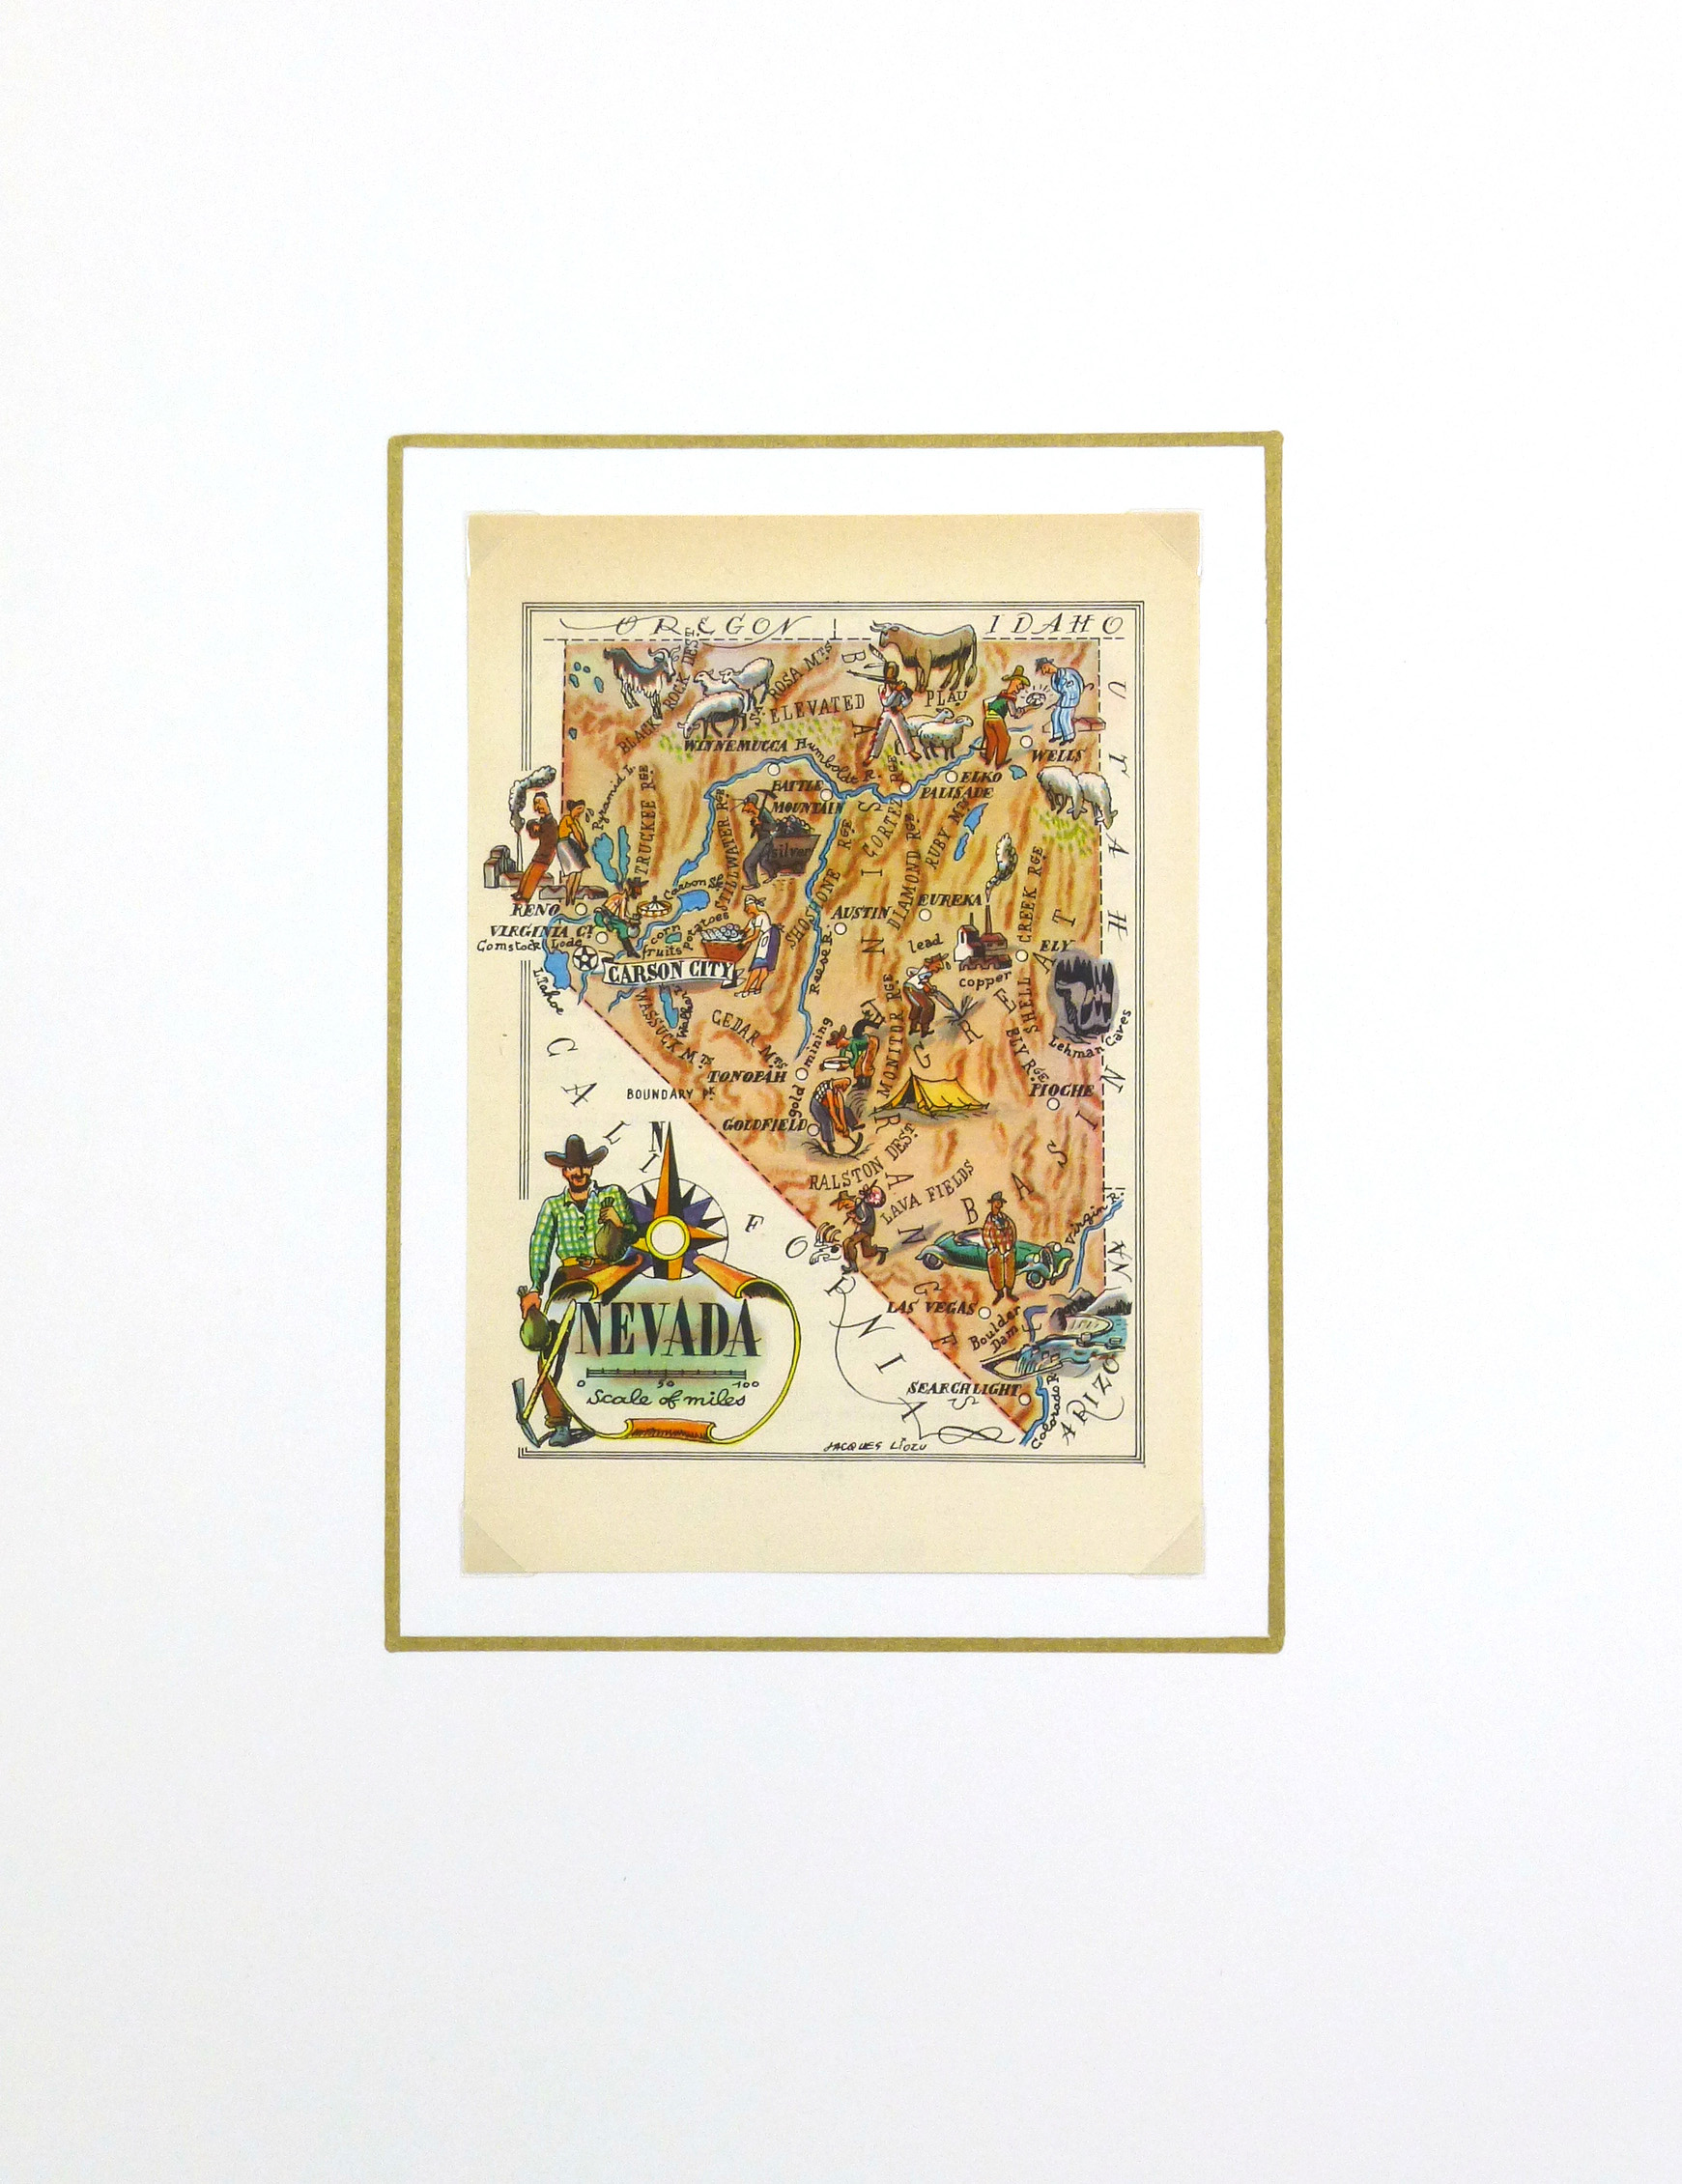 Nevada Pictorial Map, 1946-matted-6246K